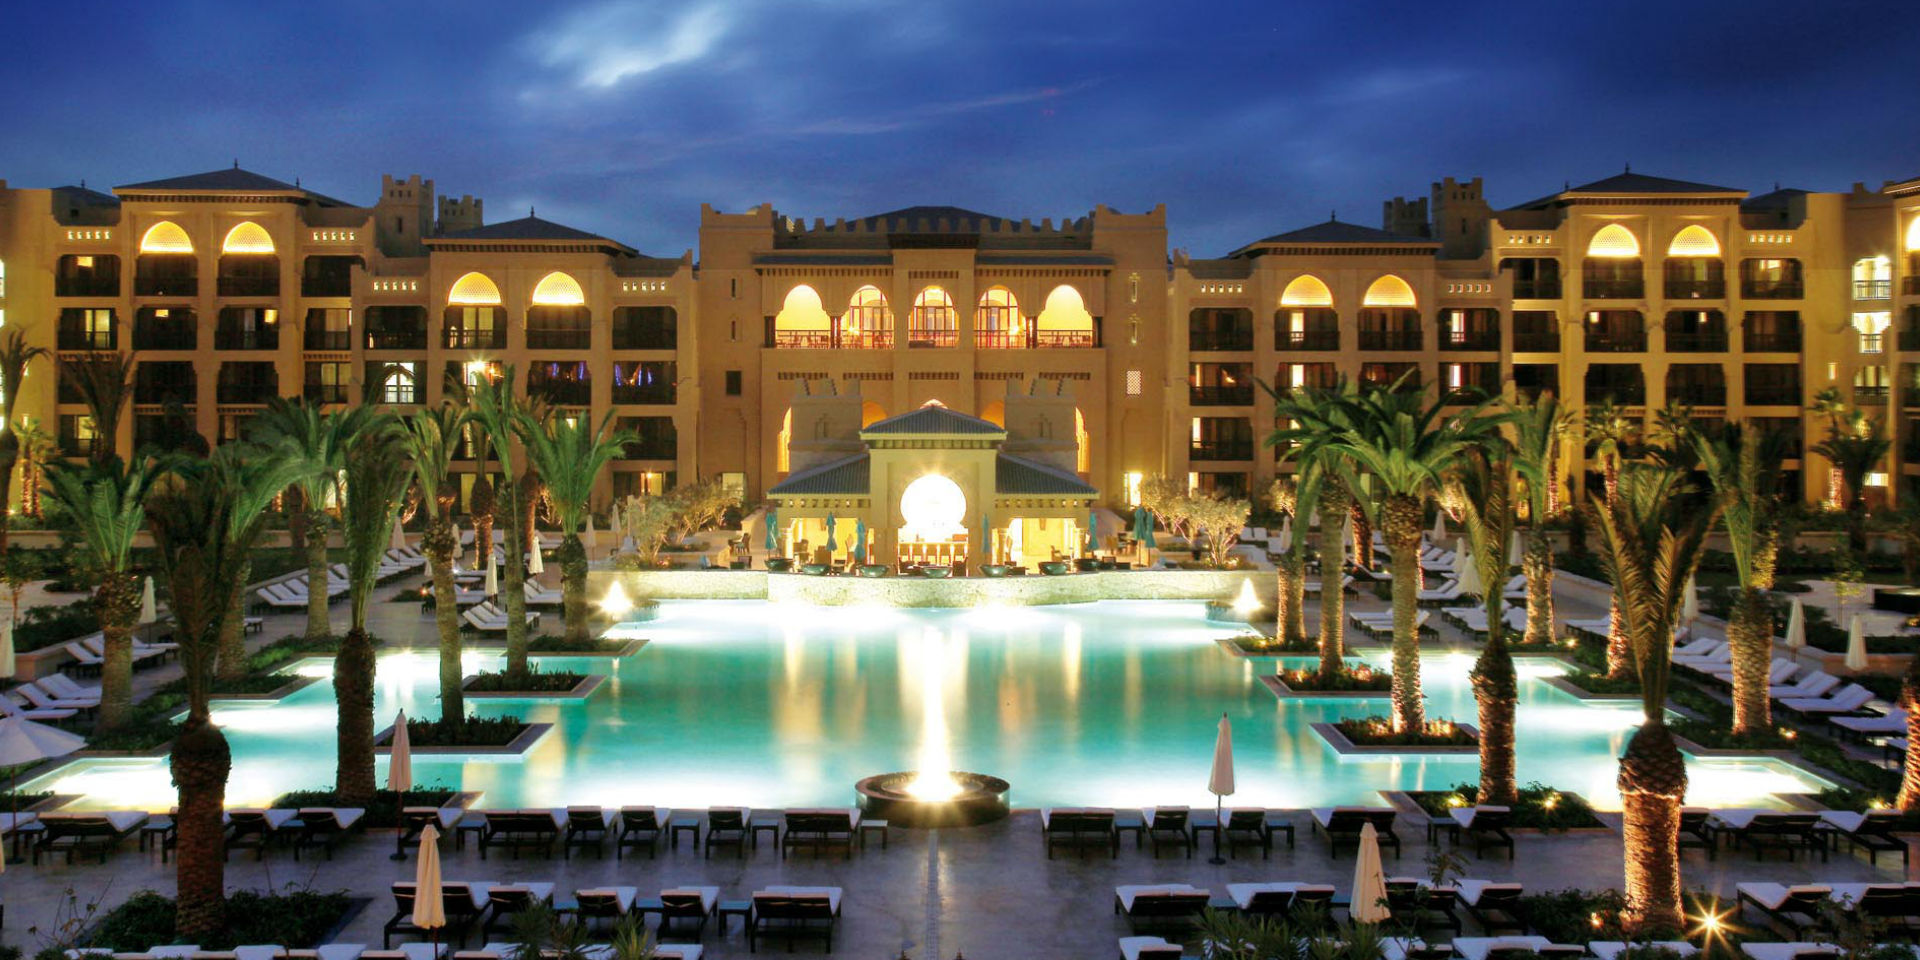 Eminent speakers to lead discussion at Hotelier Summit Africa